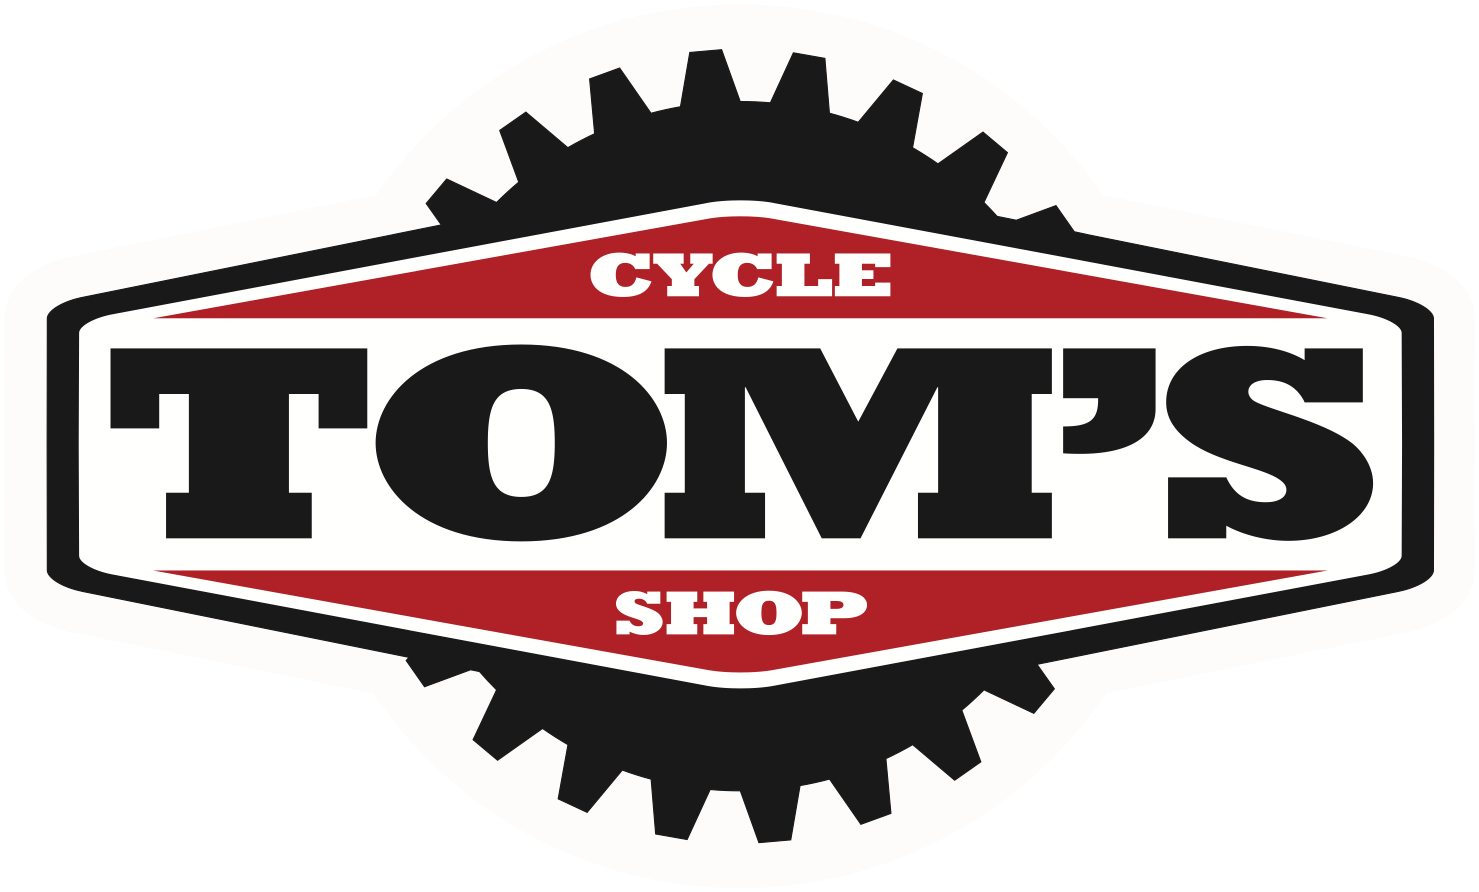 Tom's Cycle Shop